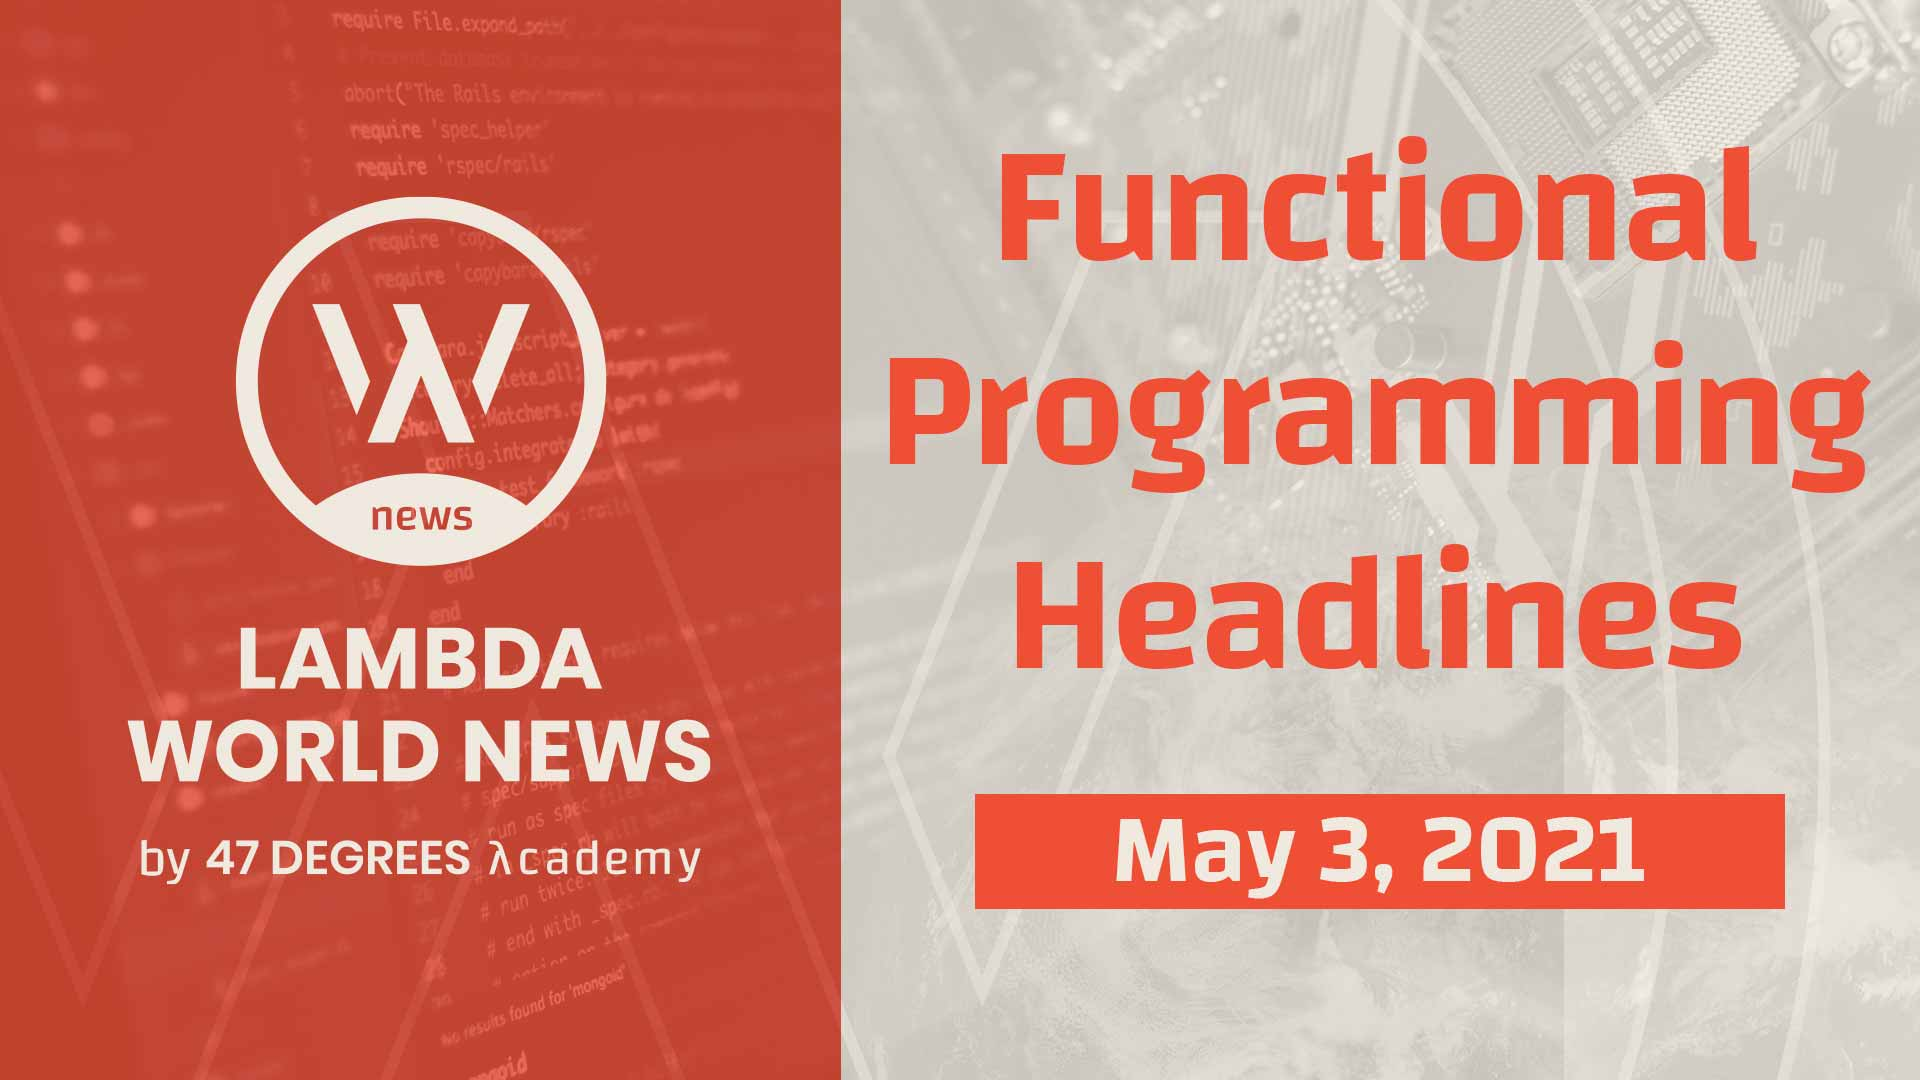 Lambda World News | Functional Programming Headlines for the week of May 3rd, 2021